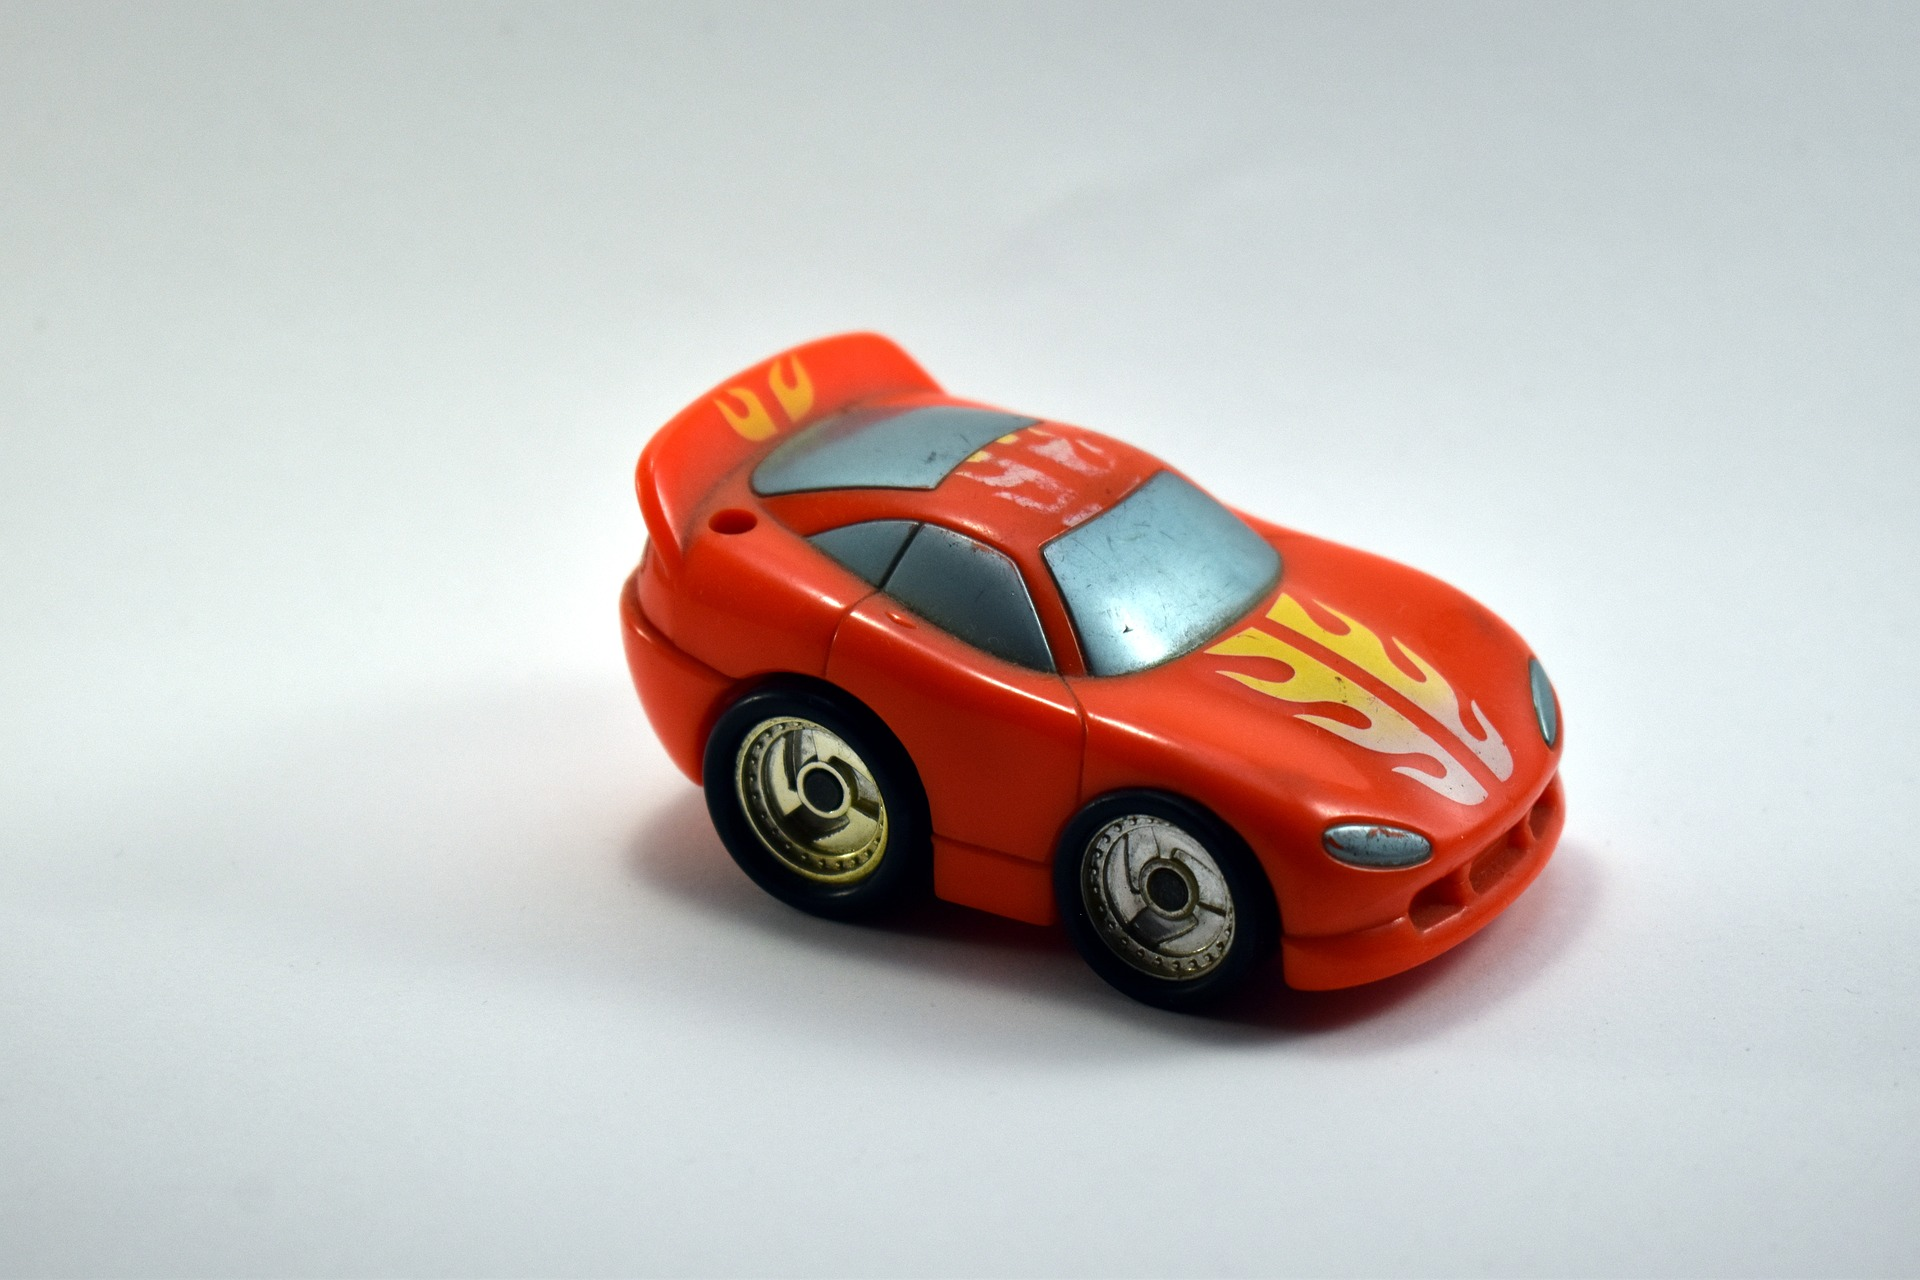 plastic toy car red